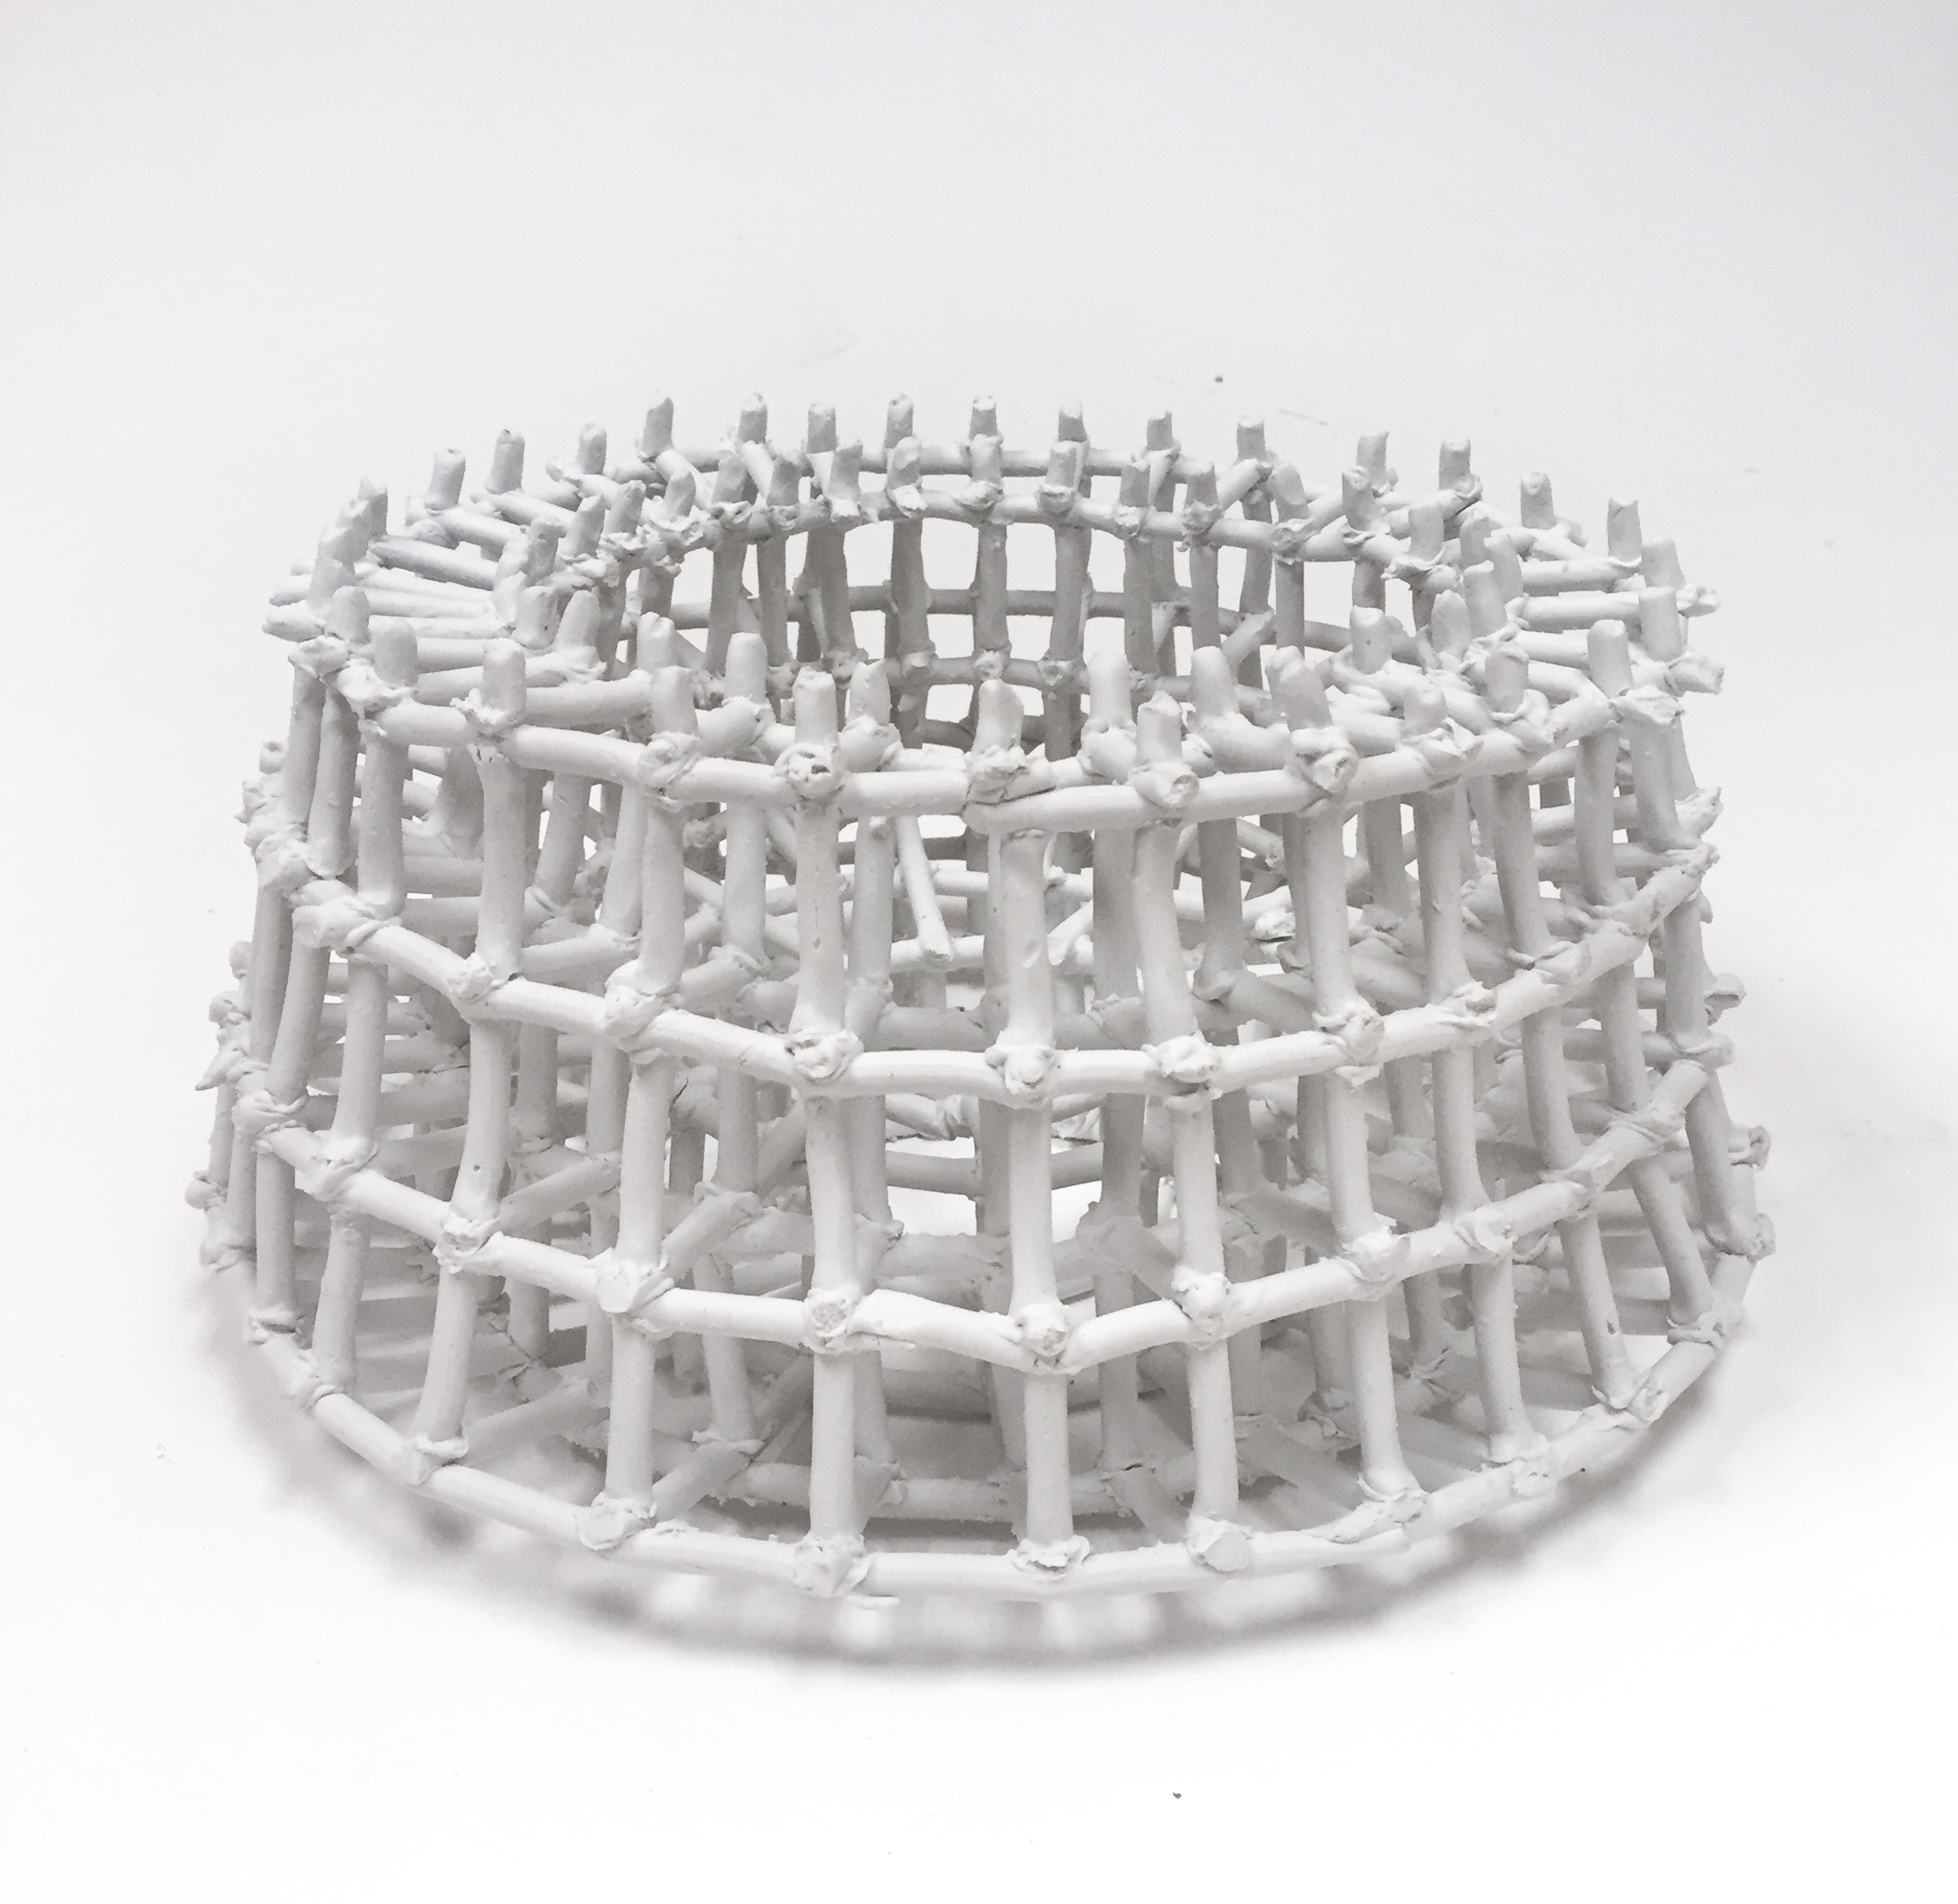 Storage Basket for Dried Sardines , 7x15x15, Porcelain, 2019